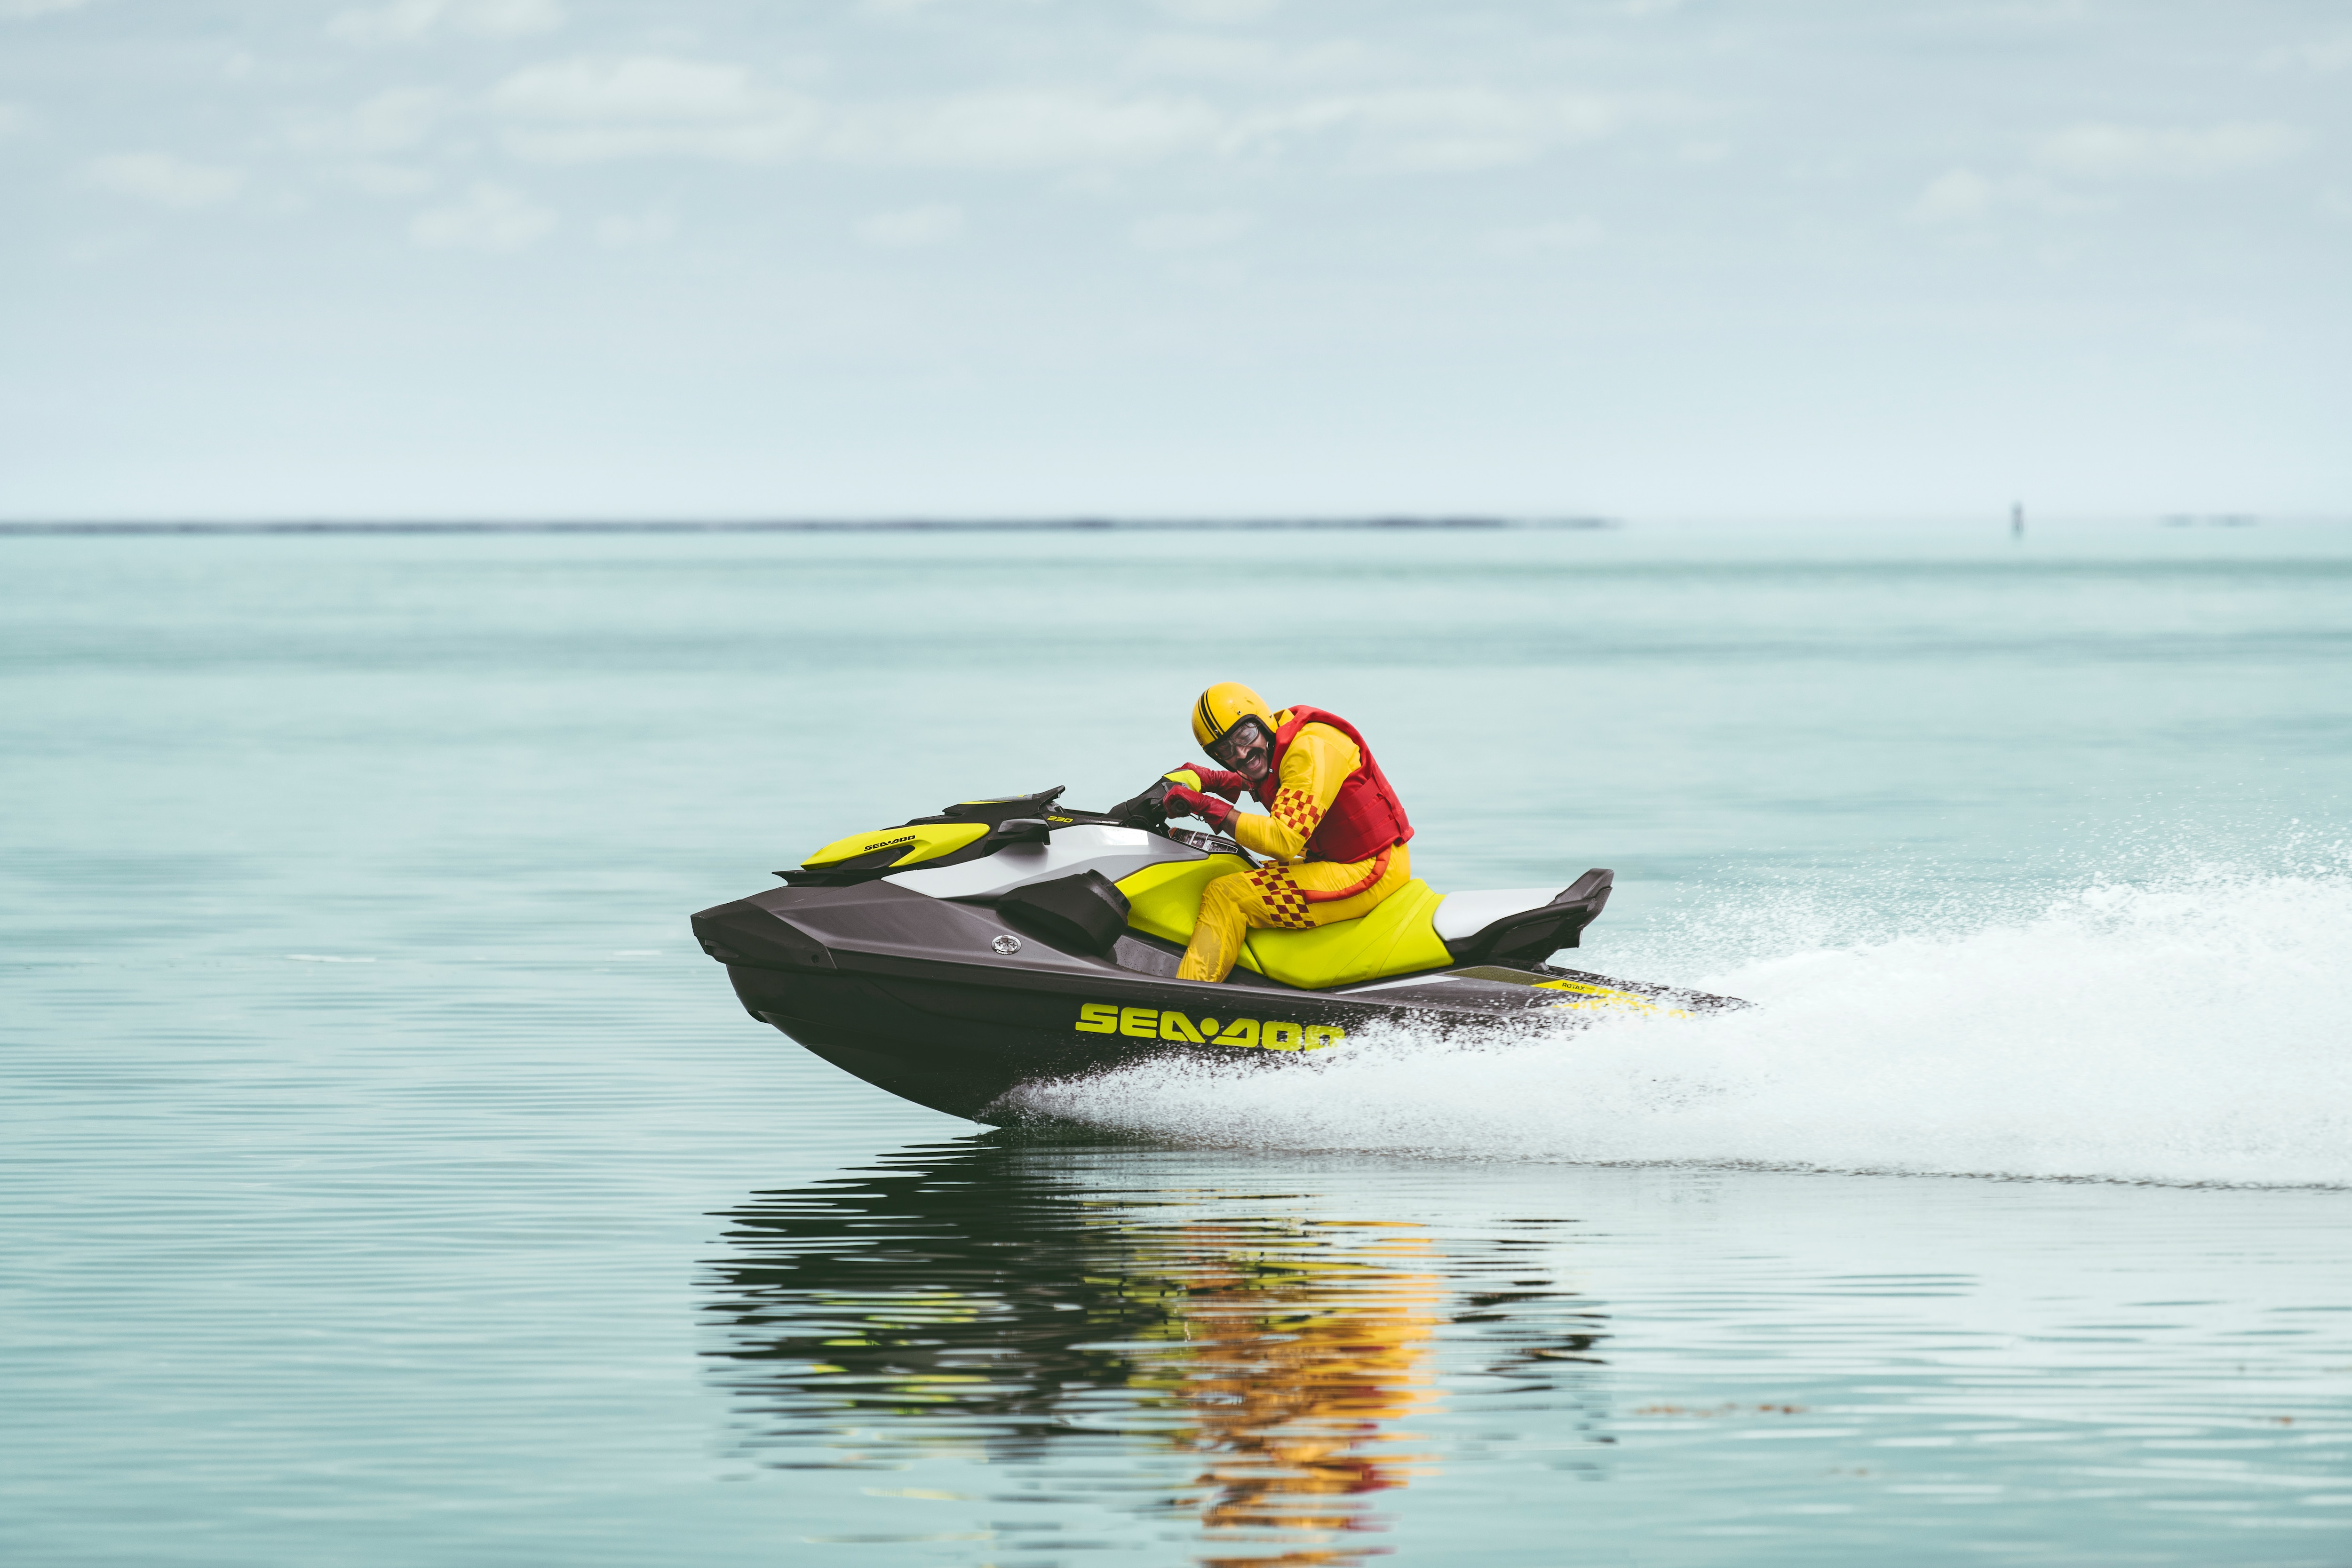 Mustached man looking at the camera while riding his Sea-Doo GTR